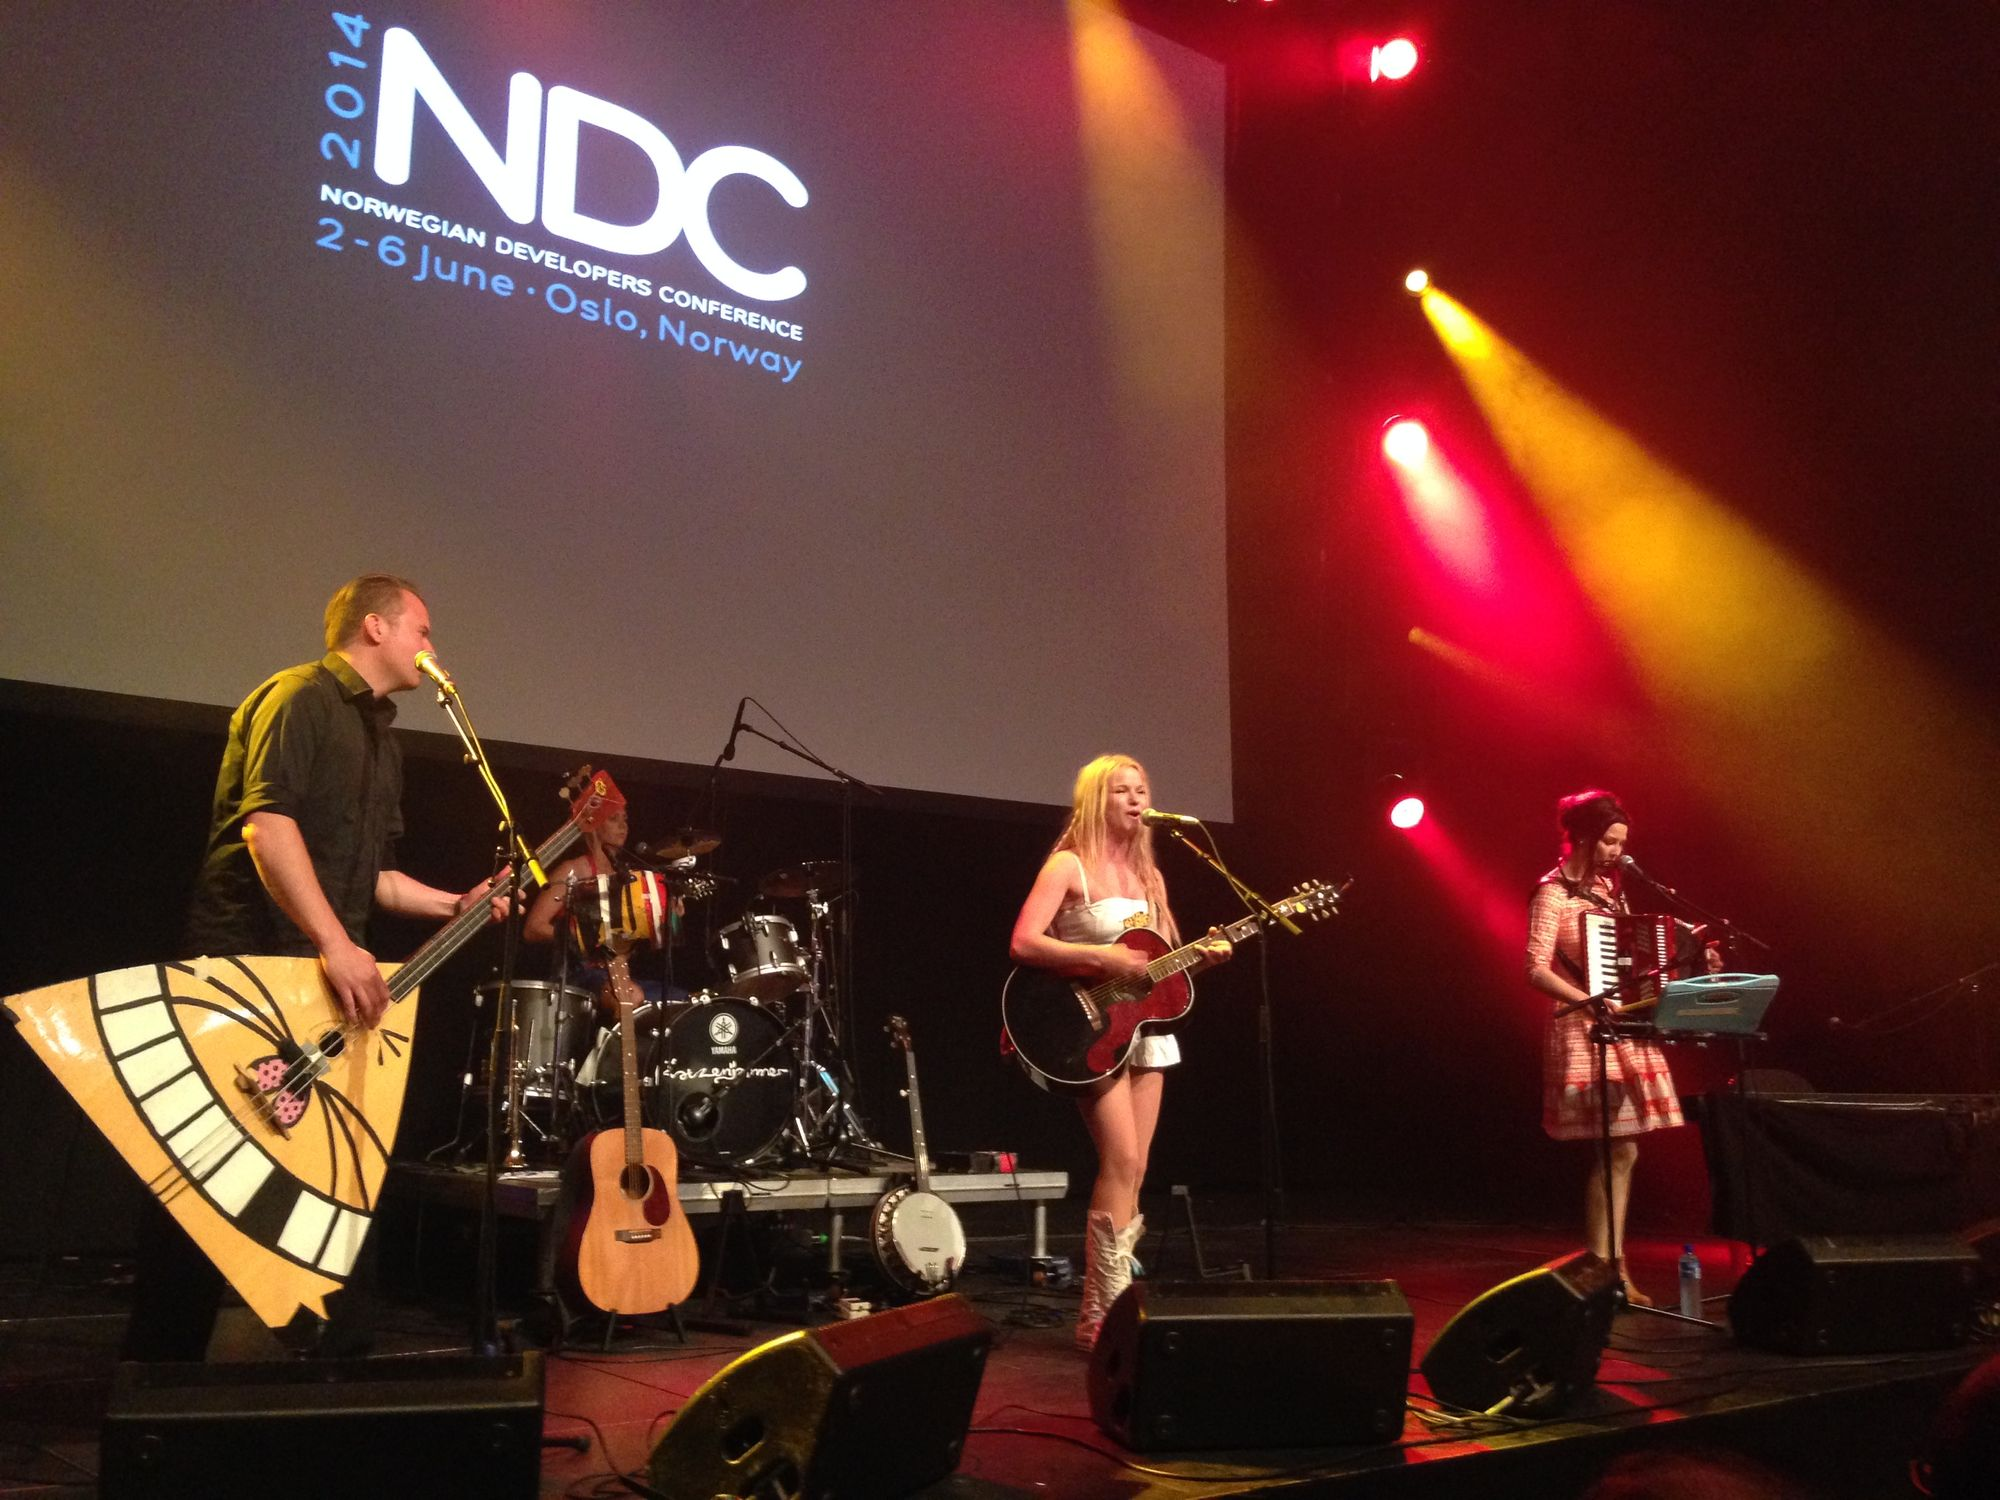 After NDC Oslo 2014